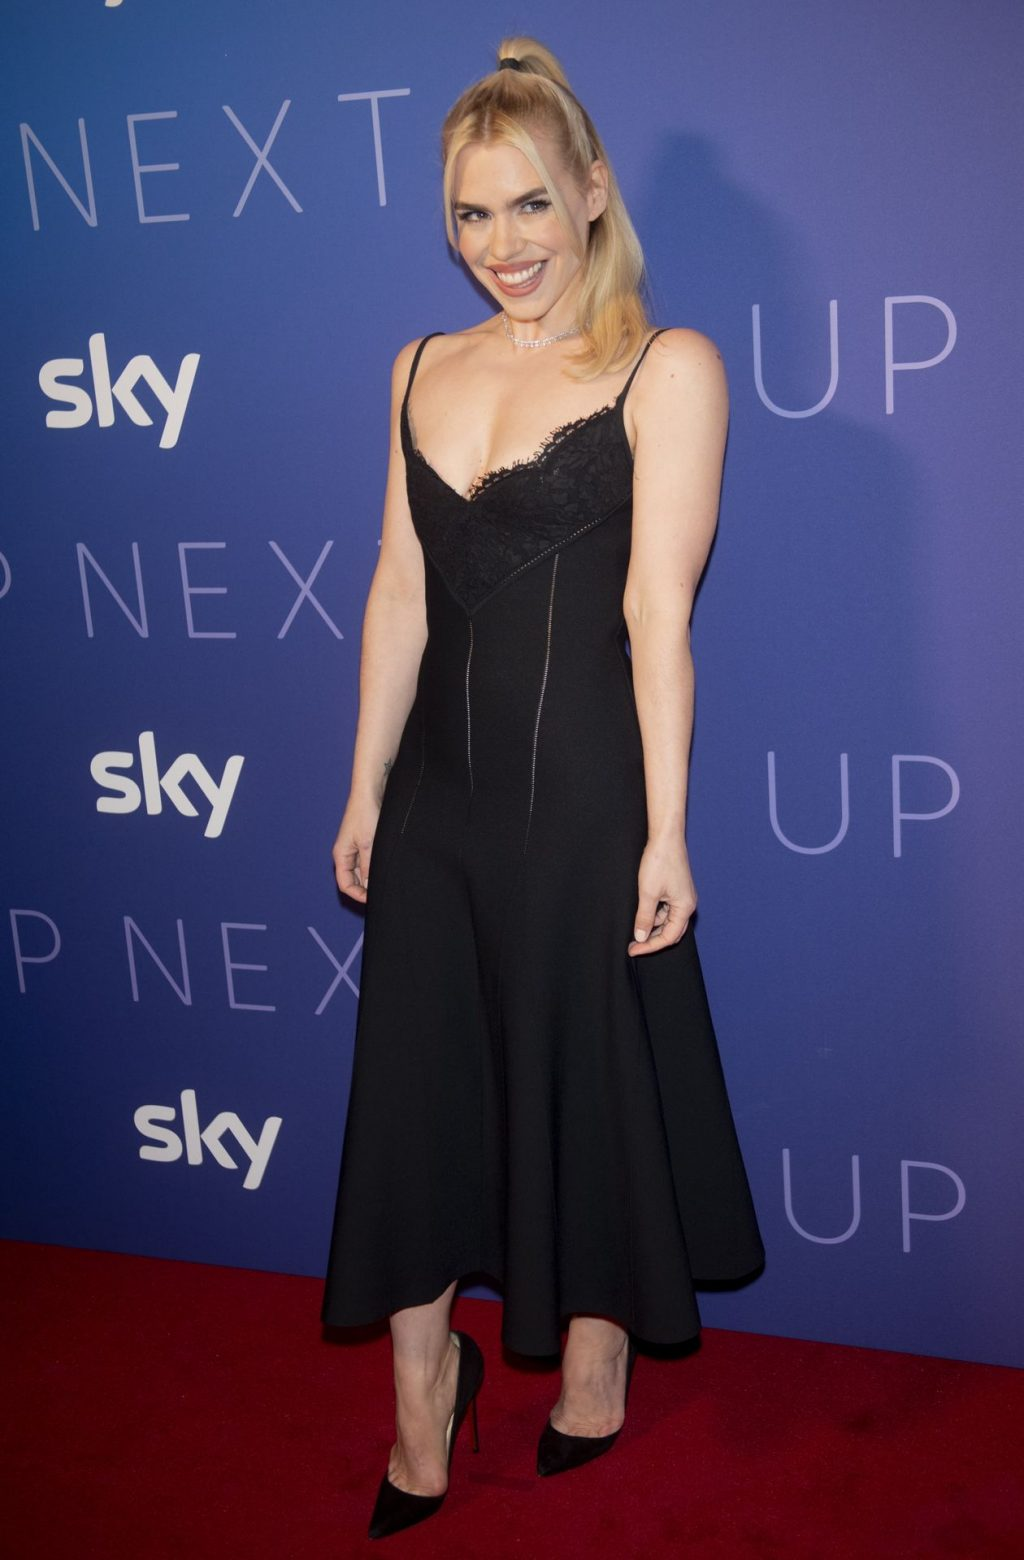 Billie Piper Sexy The Fappening Blog 54 1024x1560 - Billie Piper Smiles at the Sky Up Next Event (67 Photos)